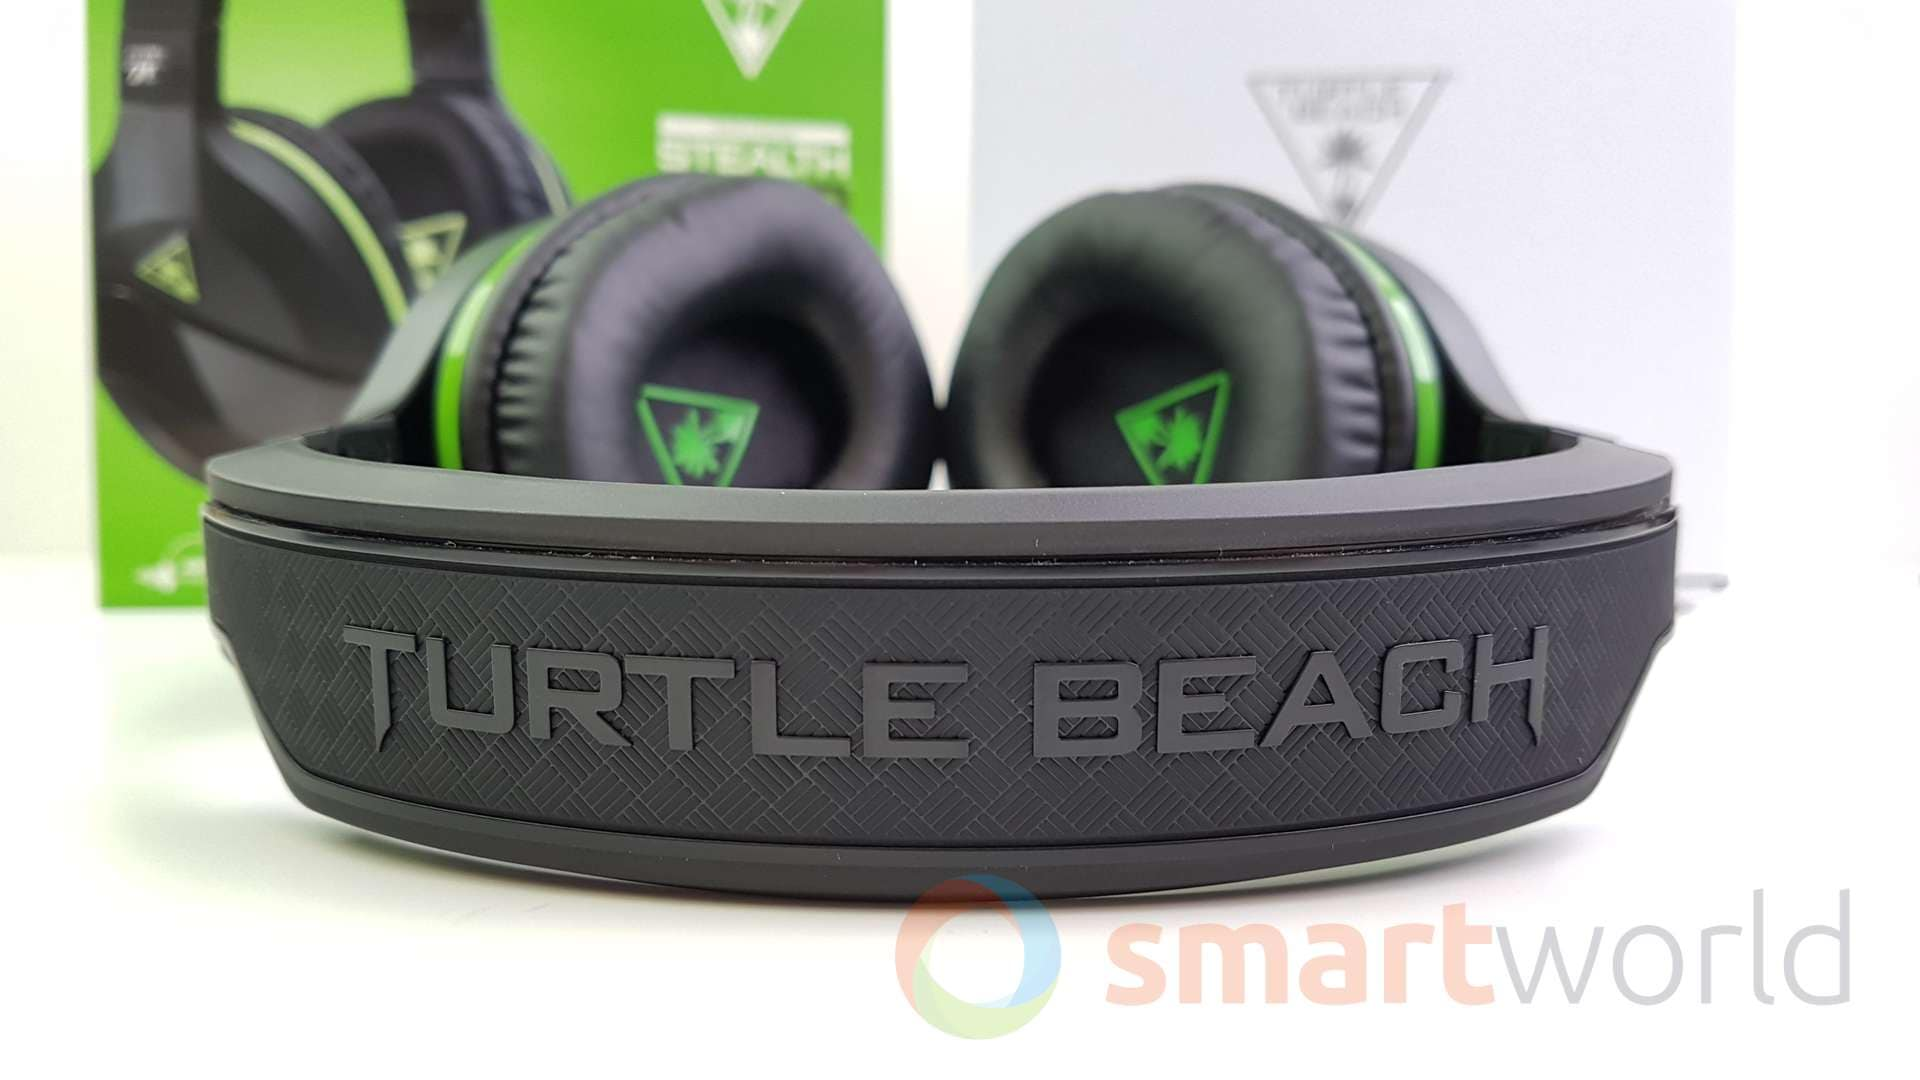 recensione turtle beach stealth 600 stealth 700 smartworld. Black Bedroom Furniture Sets. Home Design Ideas